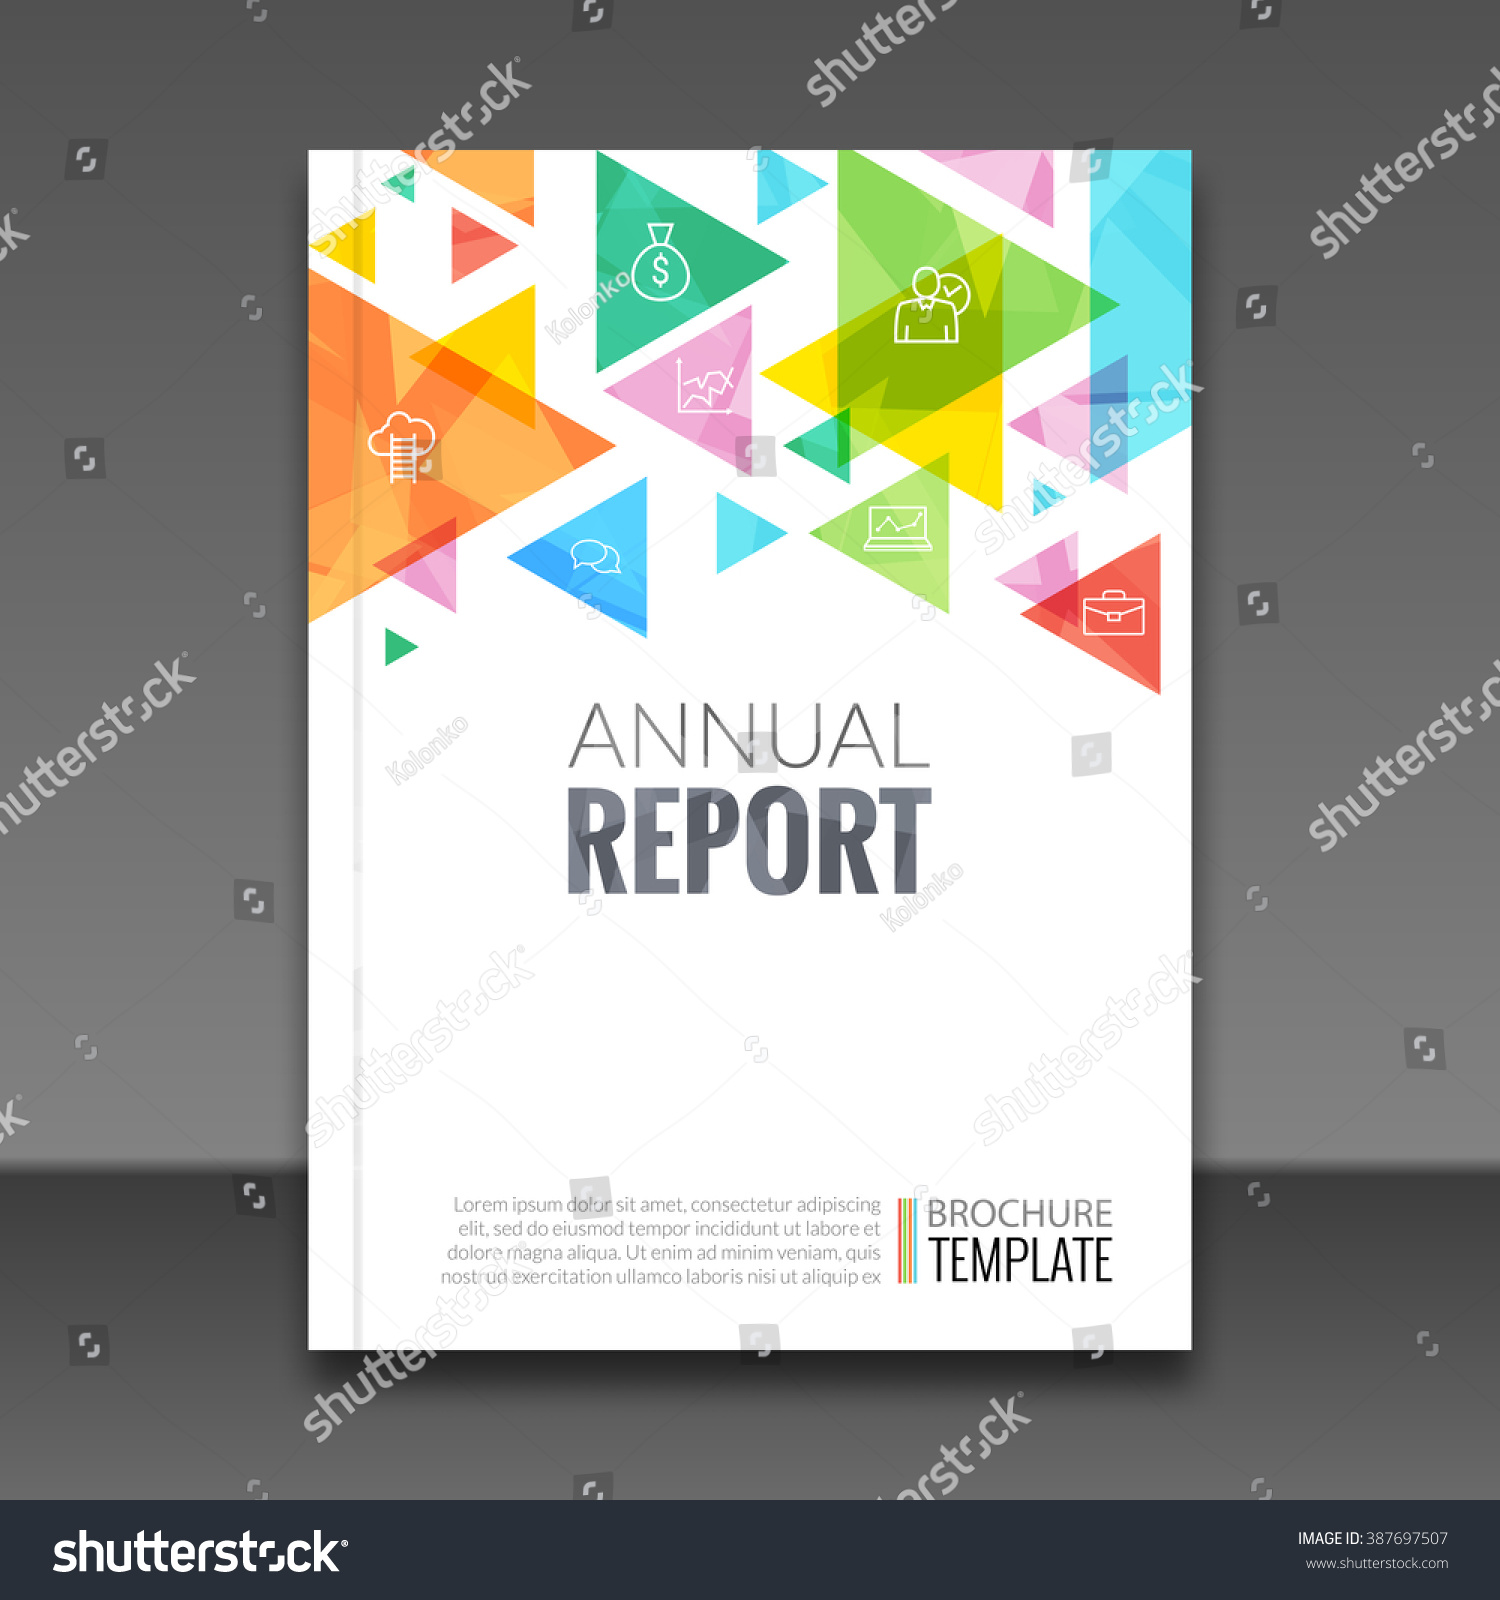 royalty cover report colorful triangle stock cover report colorful triangle geometric prospectus design background cover flyer magazine brochure book cover template layout vector illustration